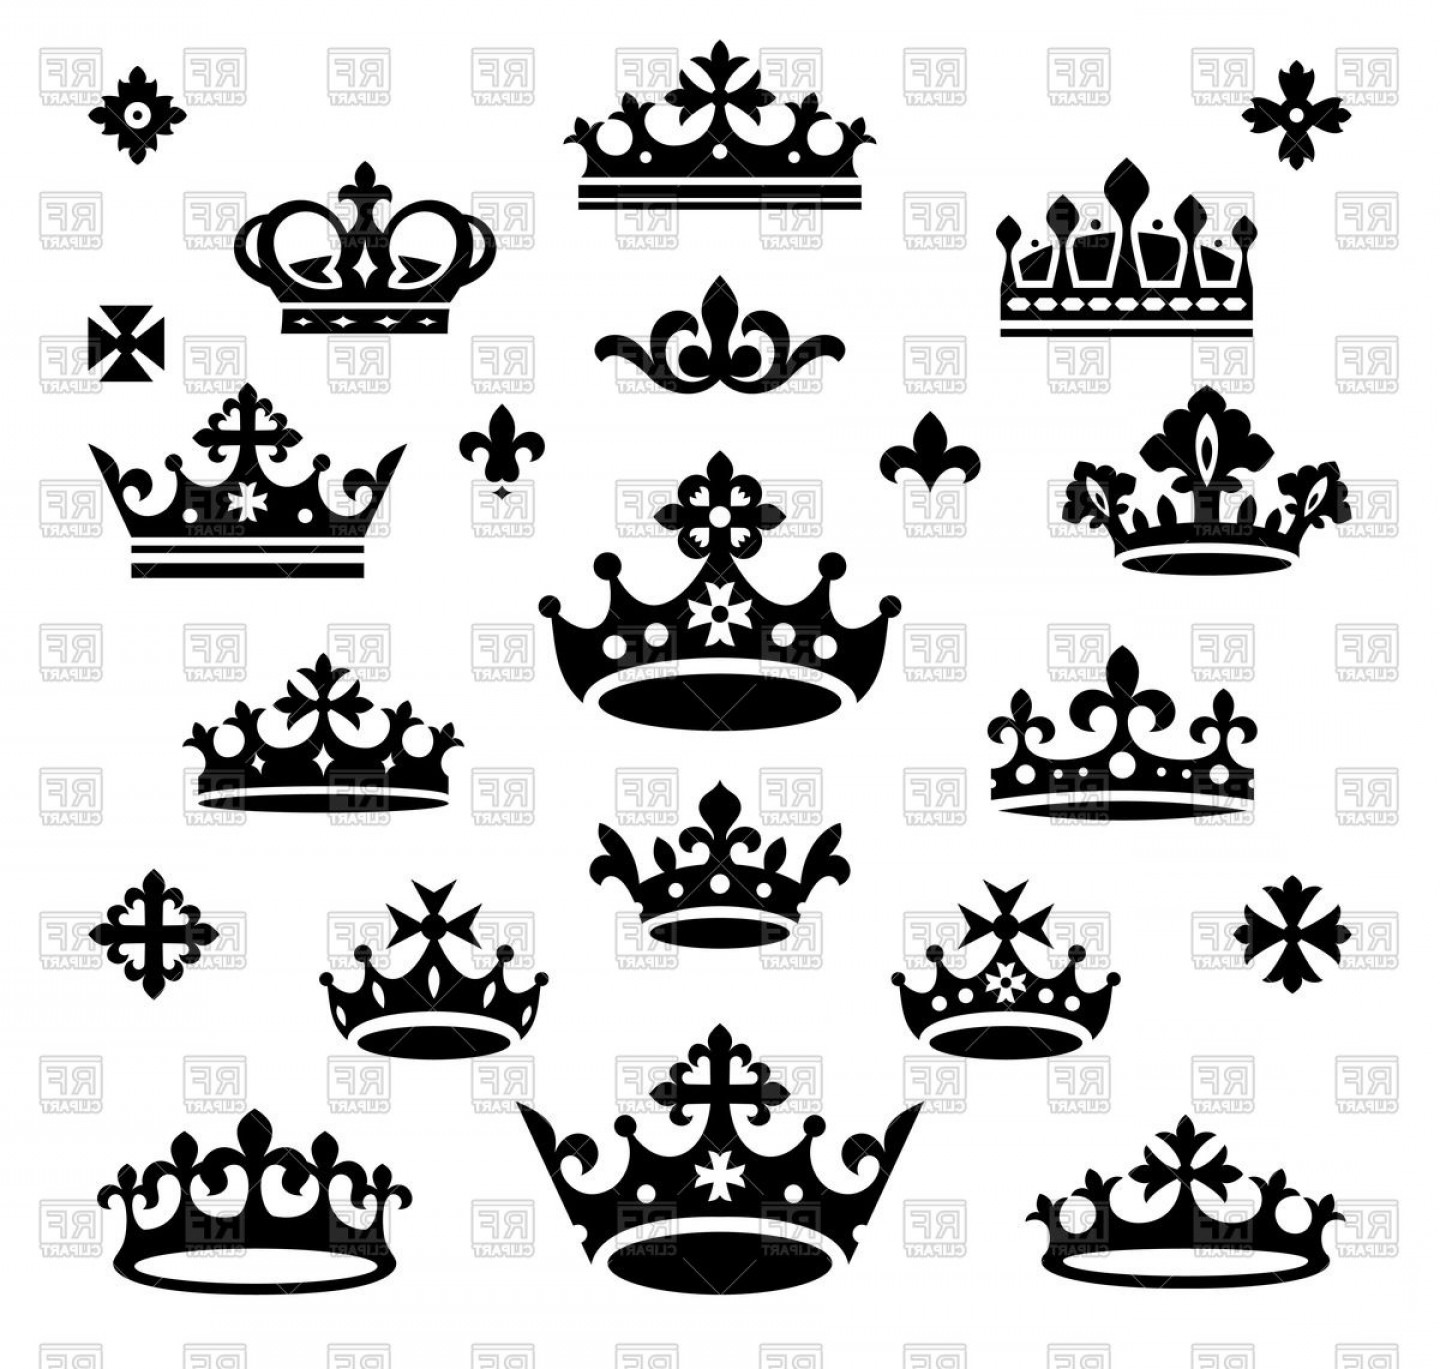 Crown Vector Clip Art: Silhouettes Of Queen And Royal Crown Vector Clipart